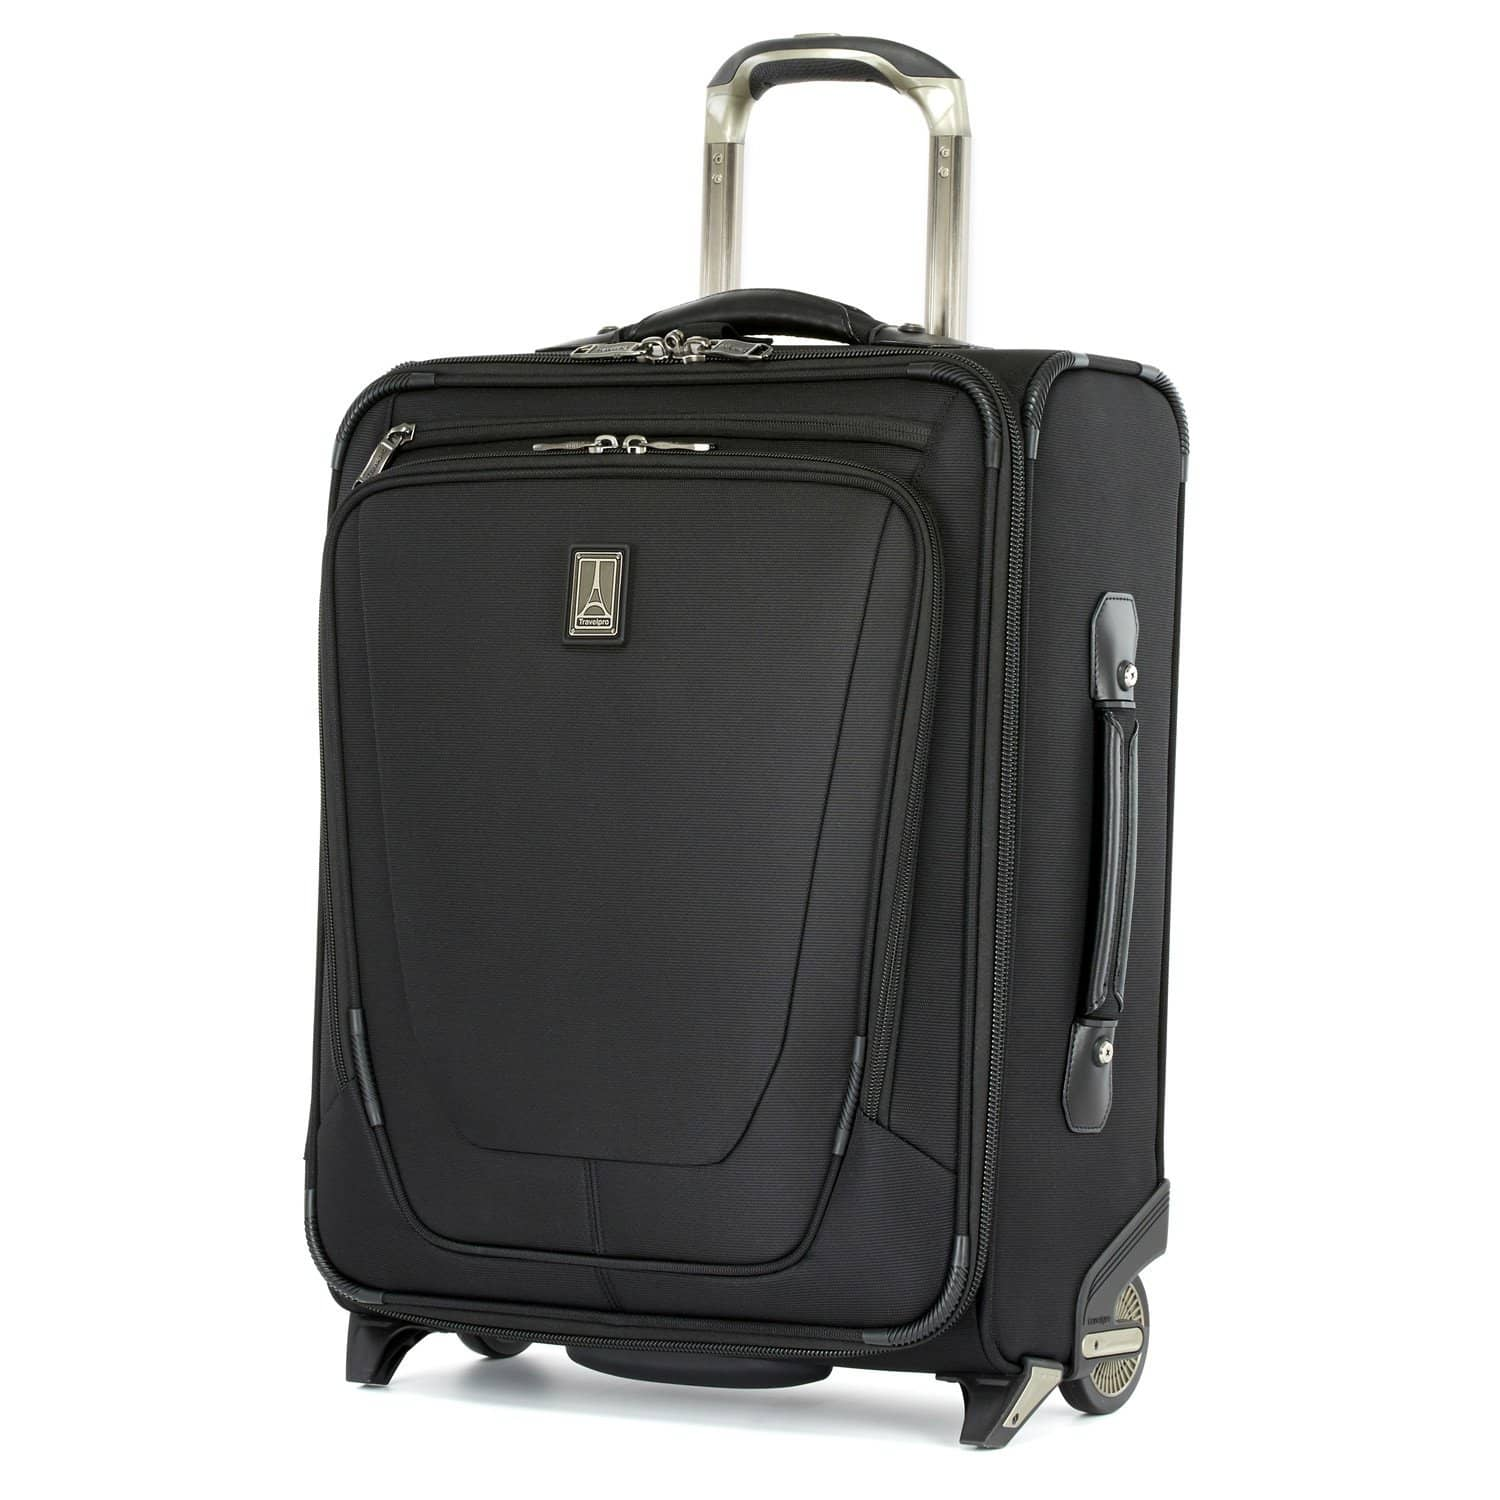 Travelpro Crew™ 11 International Carry-on Rollaboard® BLACK